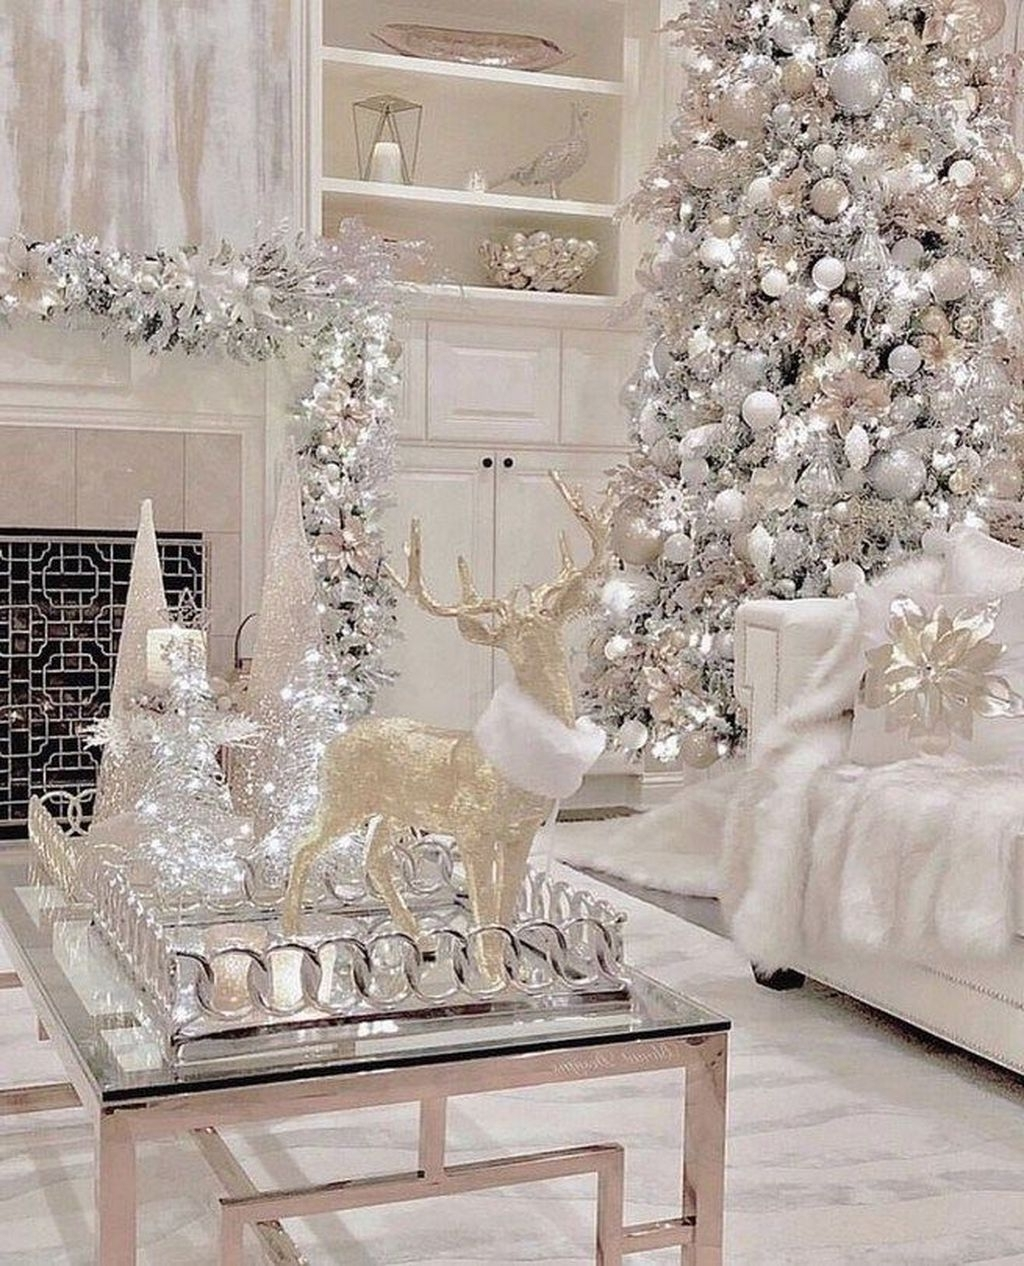 32 Amazing Winter Wonderland Home Decorations Ideas